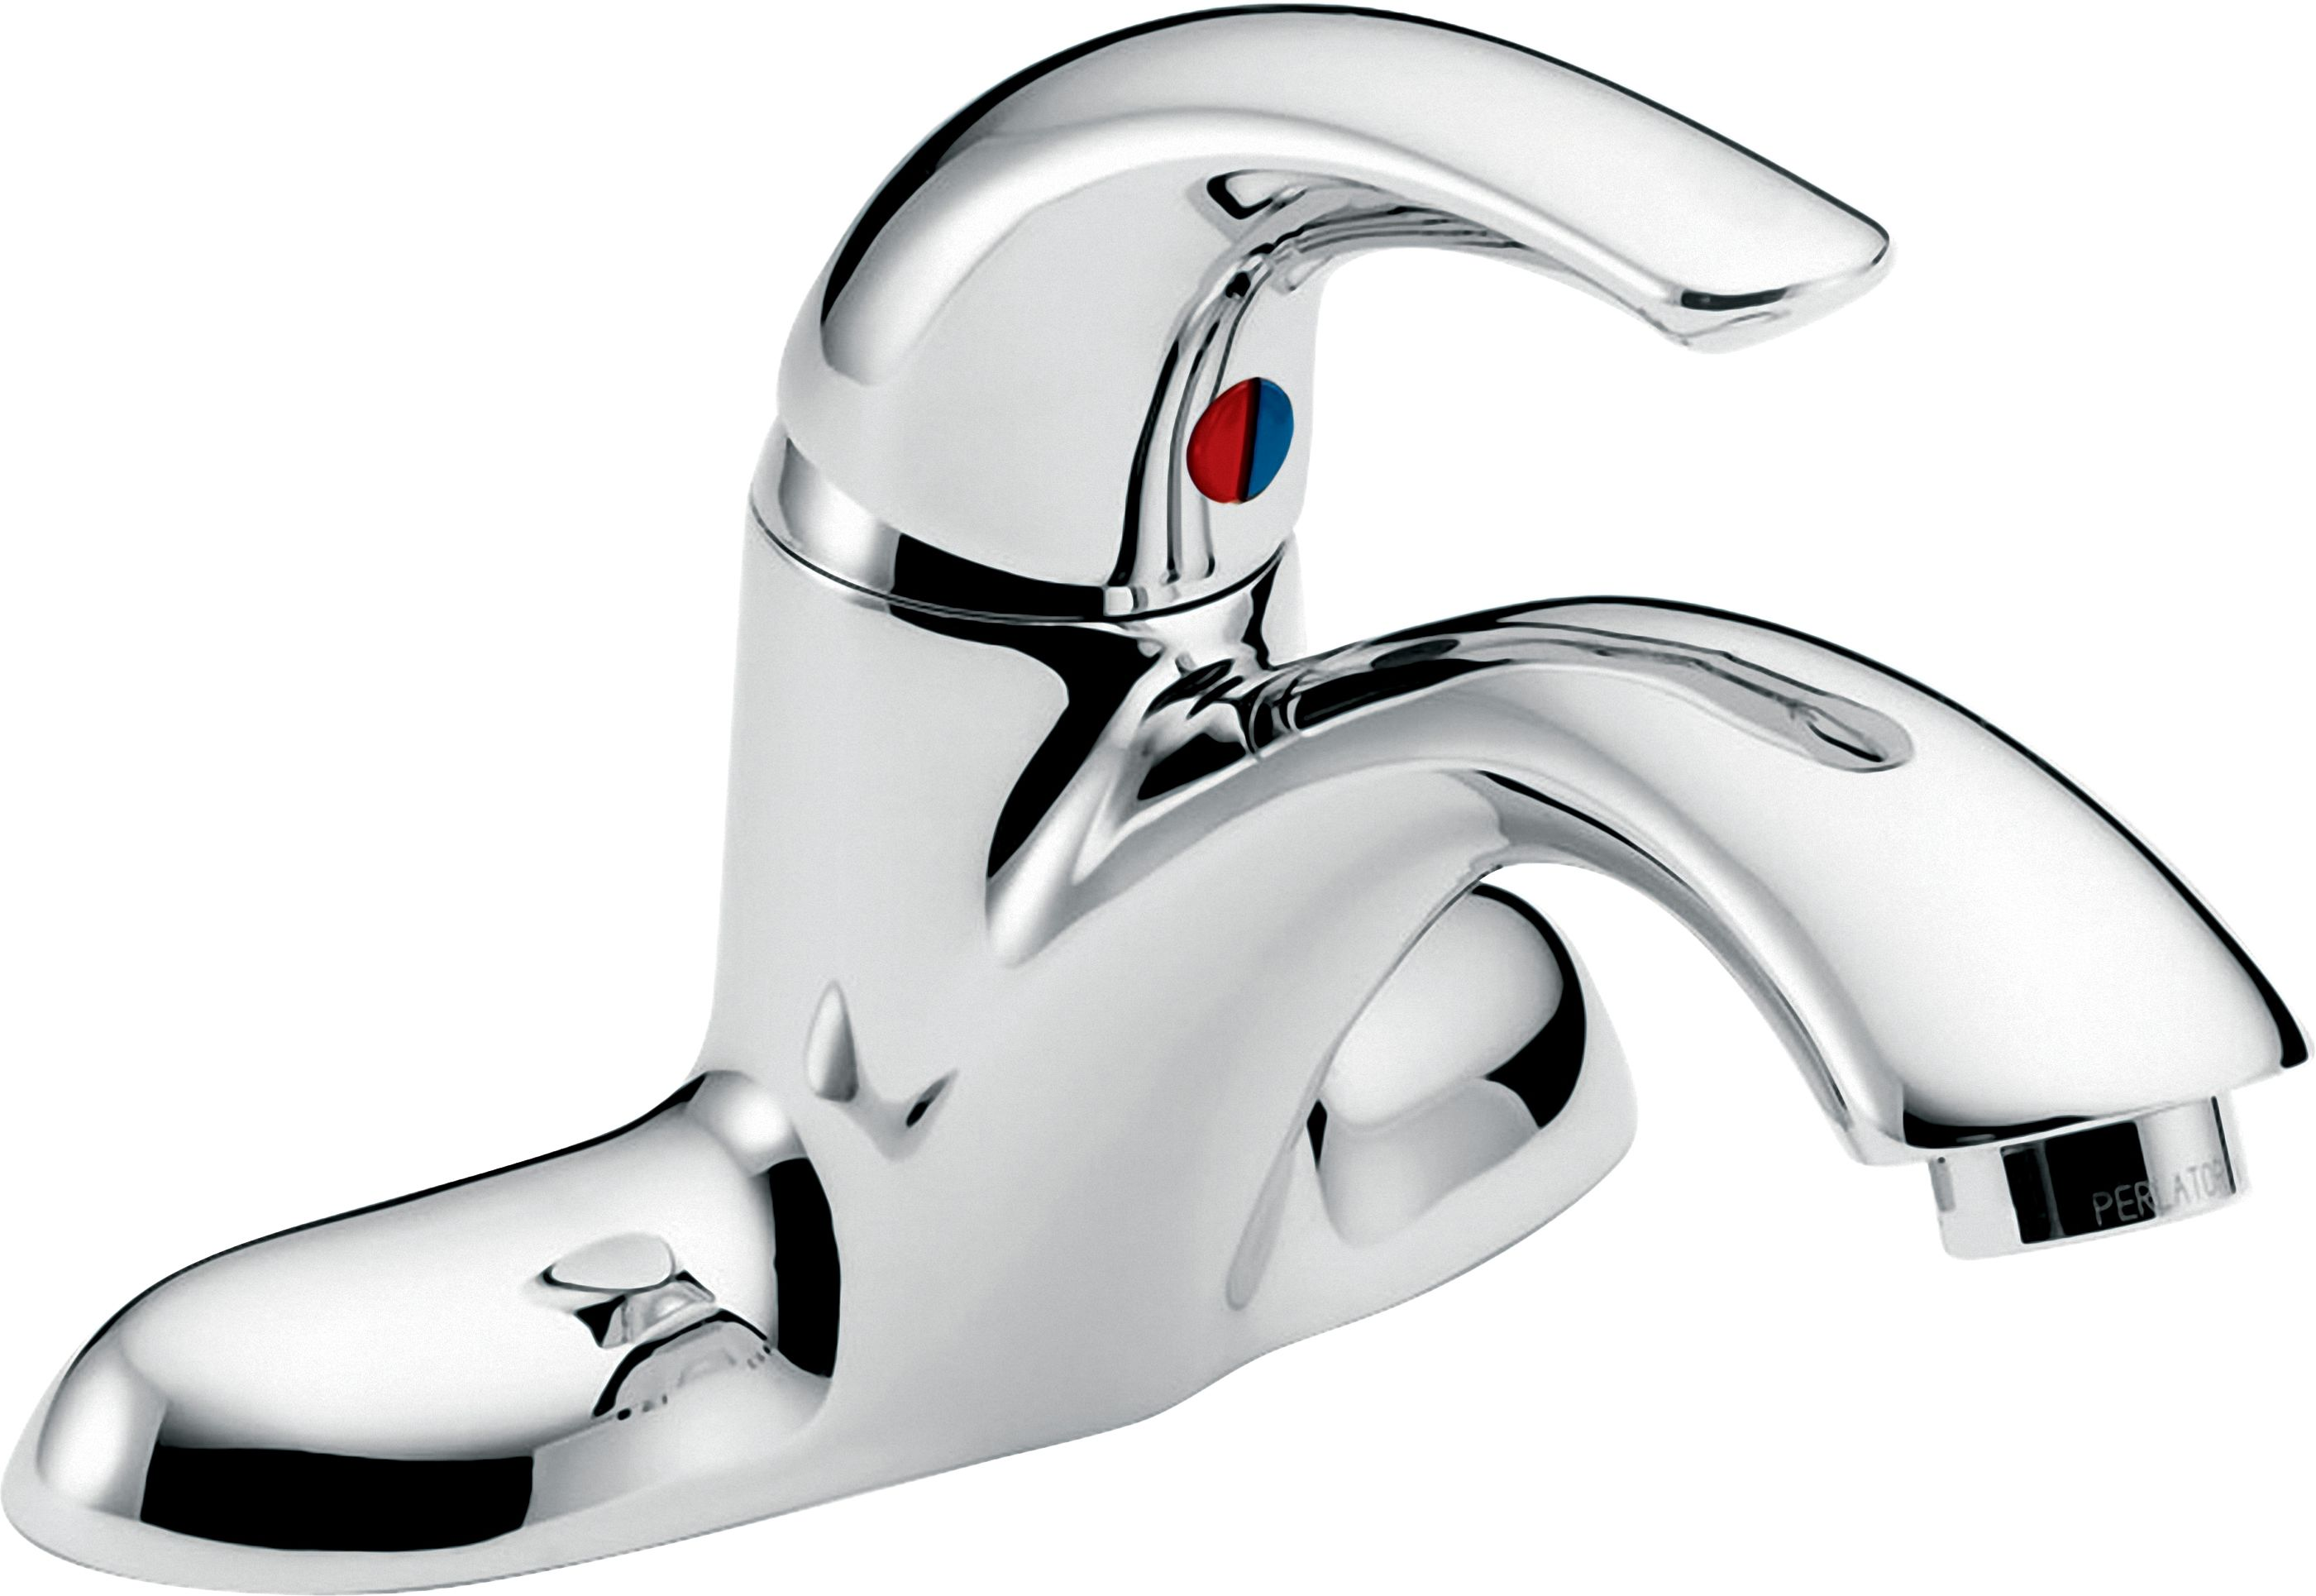 Delta 22C001 Chrome Single Handle 1.5GPM Bathroom Faucet with Wrench ...